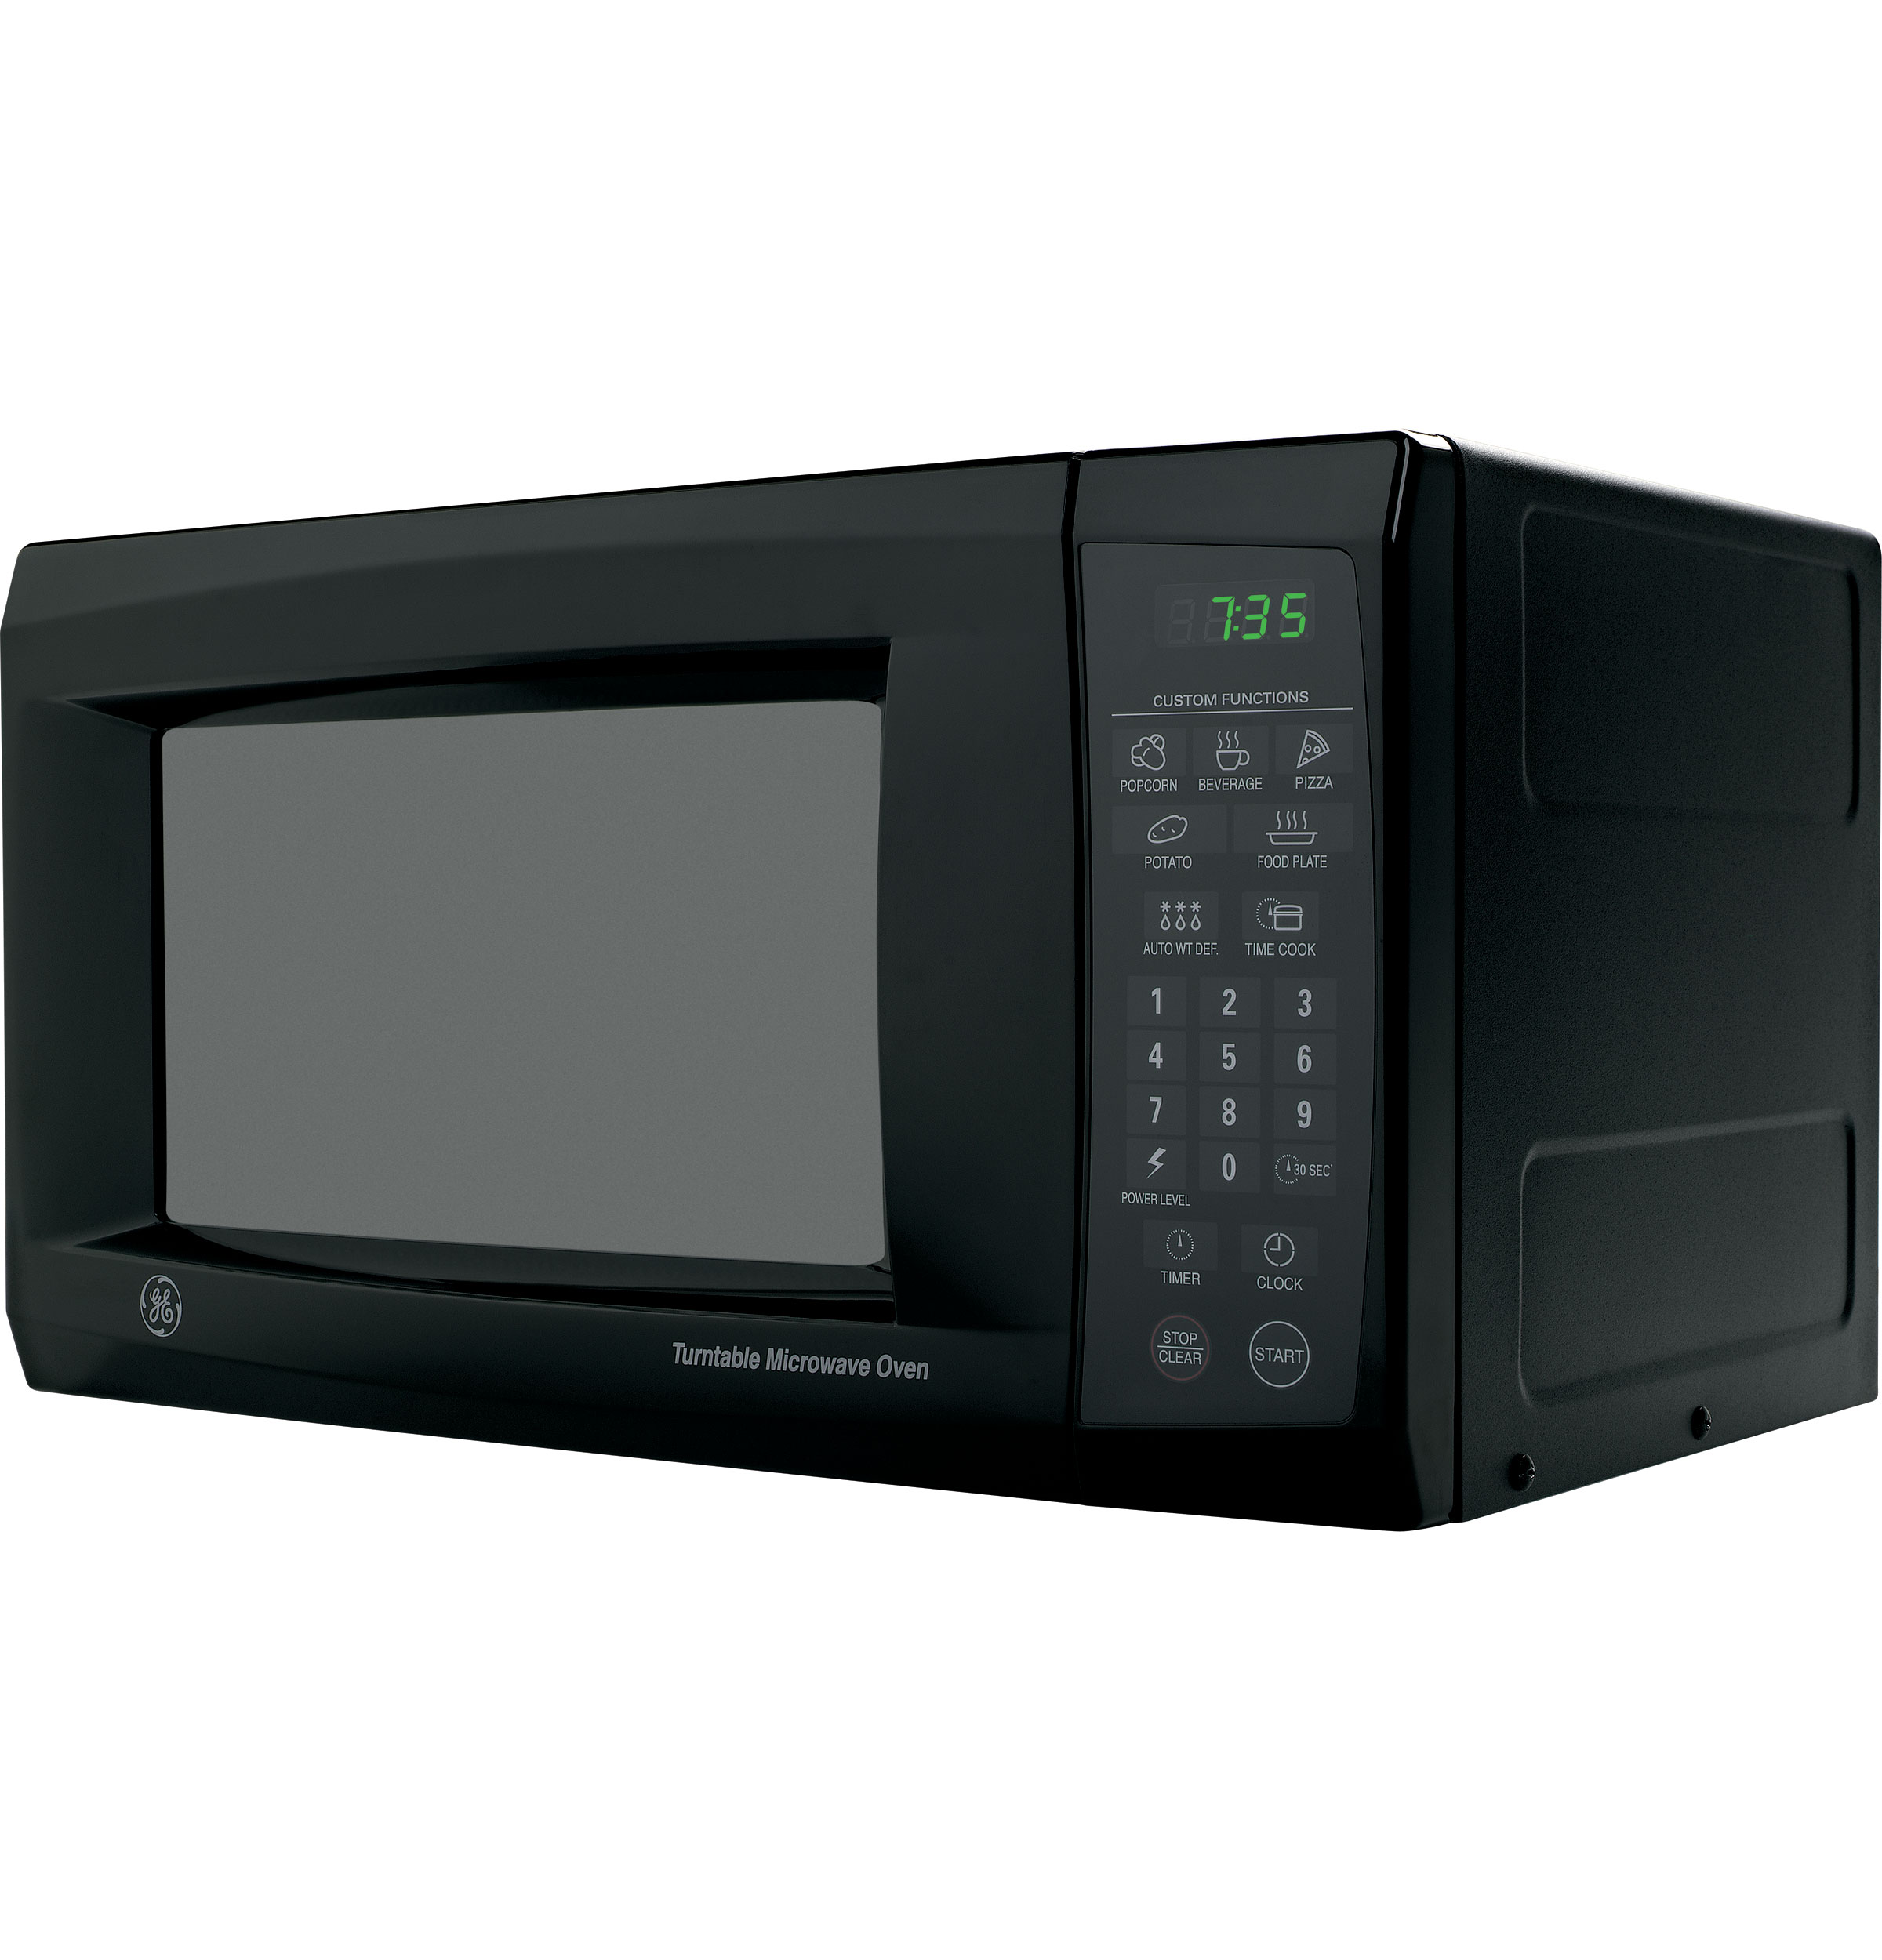 General Electric Turntable Microwave Oven Bestmicrowave